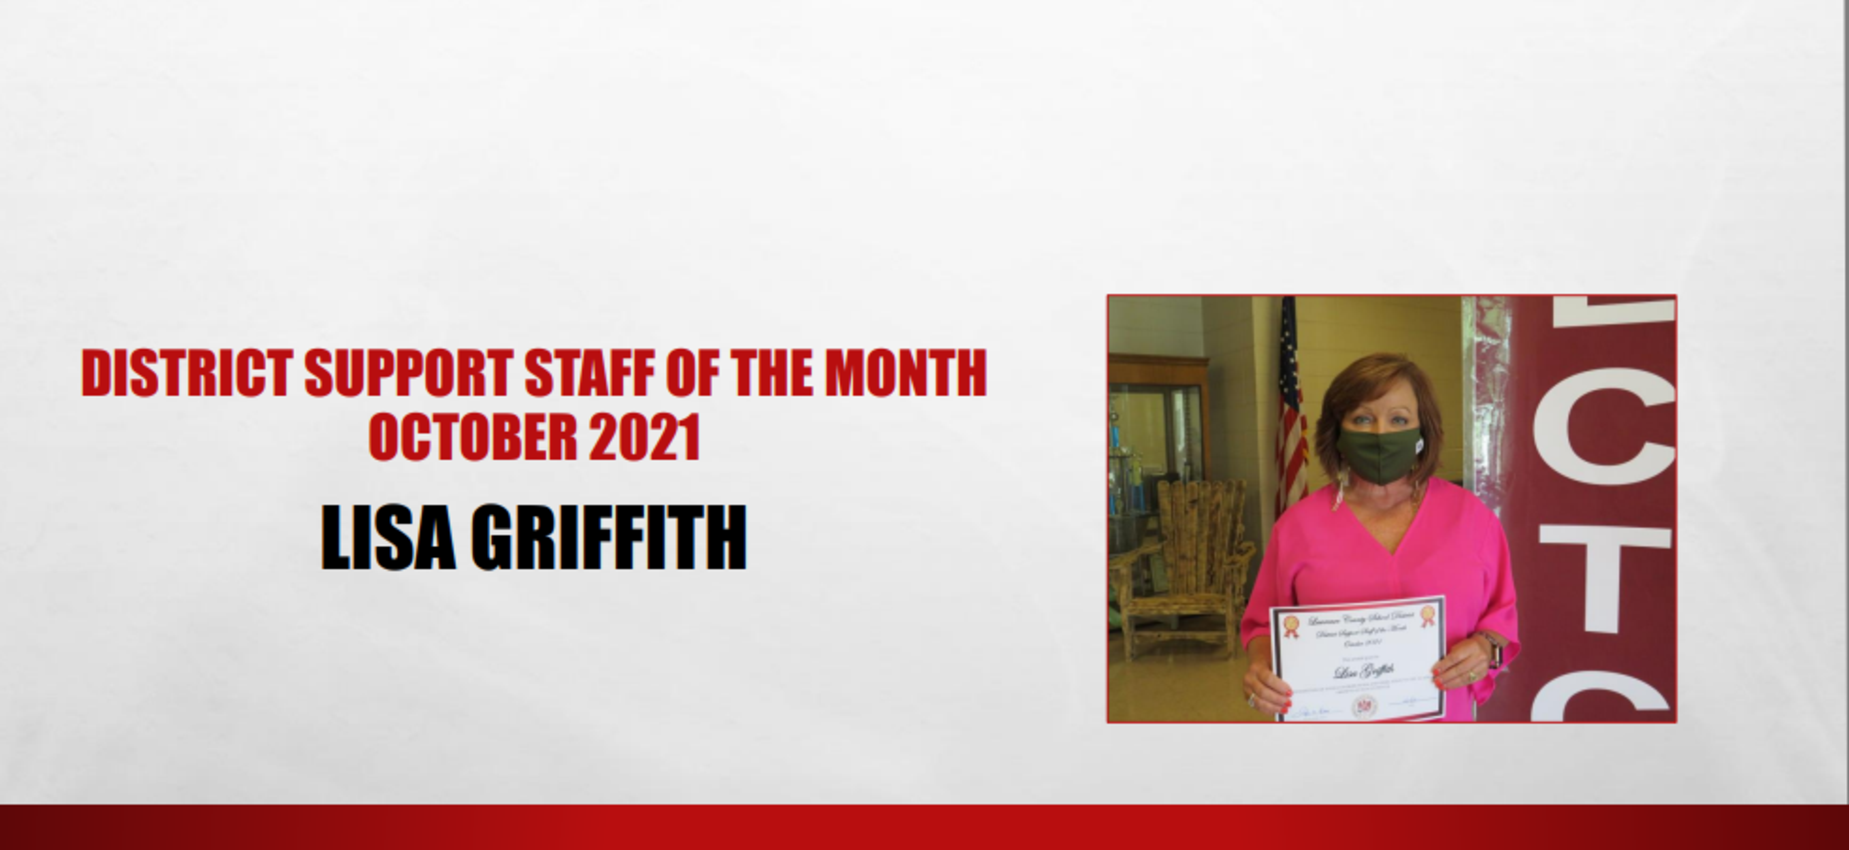 October 2021 Support Staff of the Month Lisa Griffith